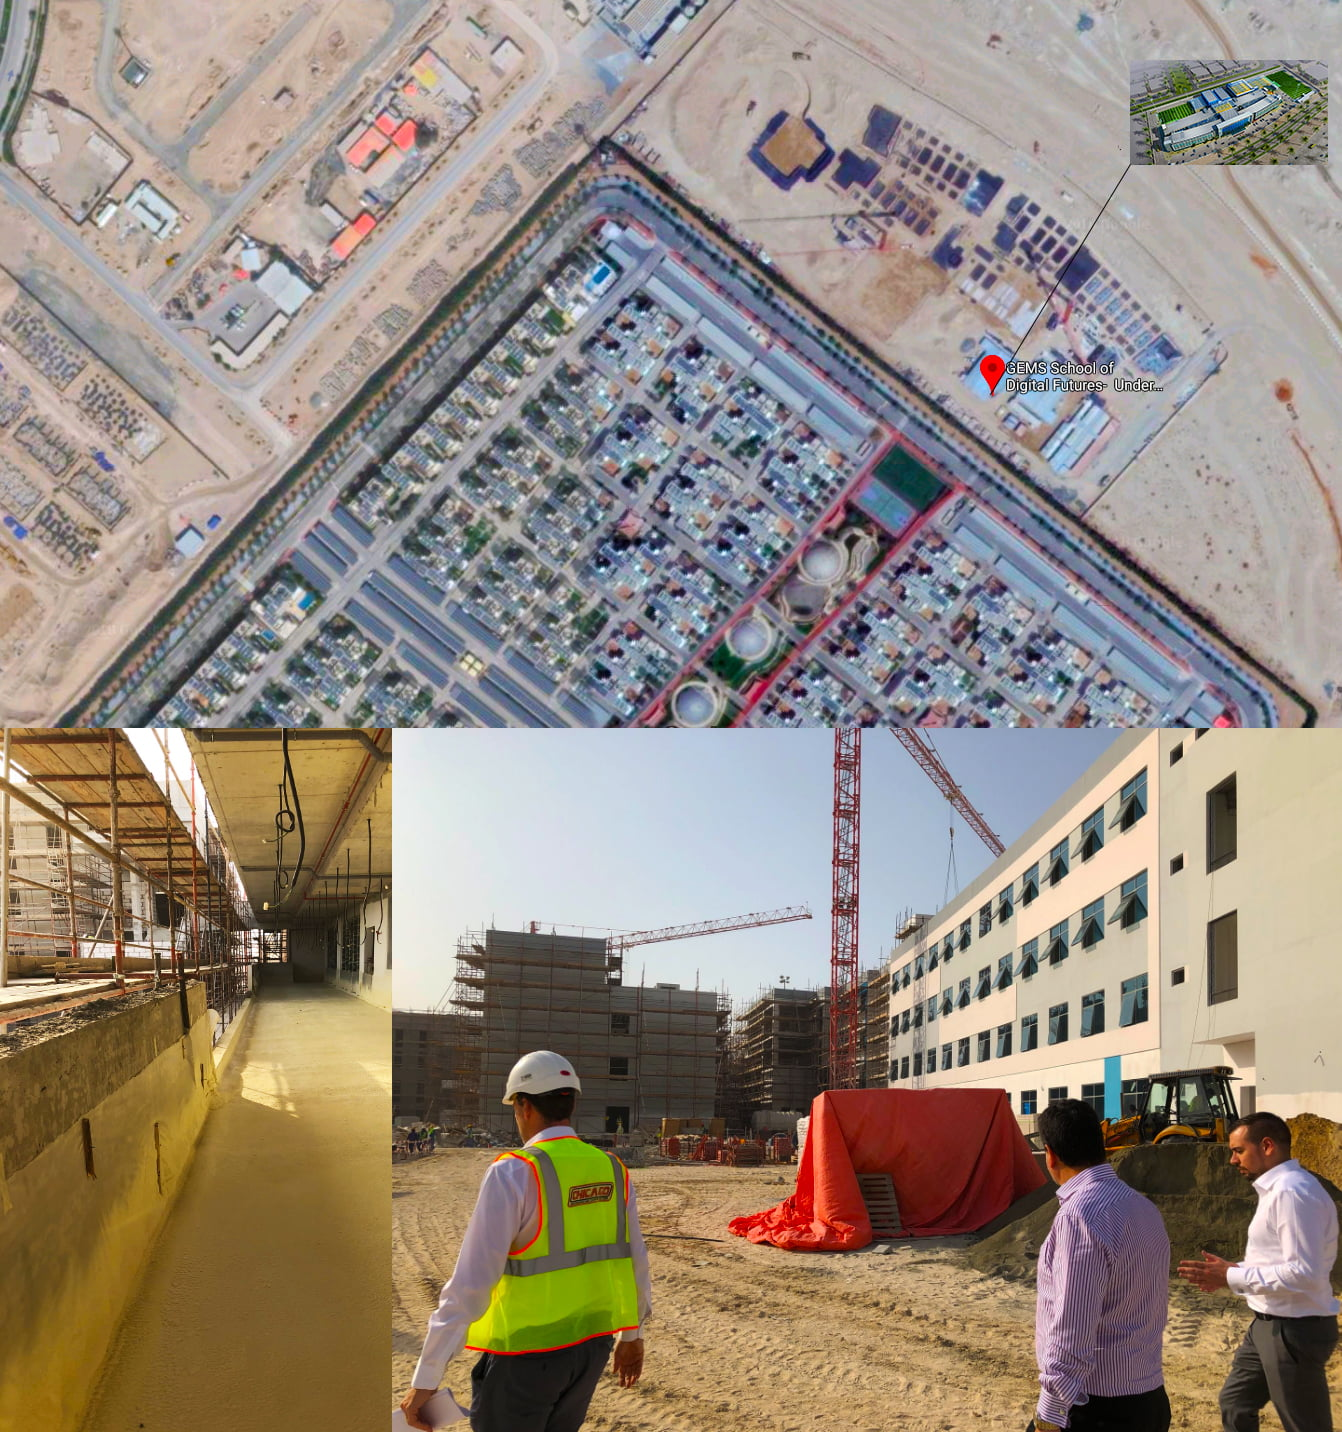 Images showing the progress of construction at GEMS school of Digital Futures in Dubai Sustainable City